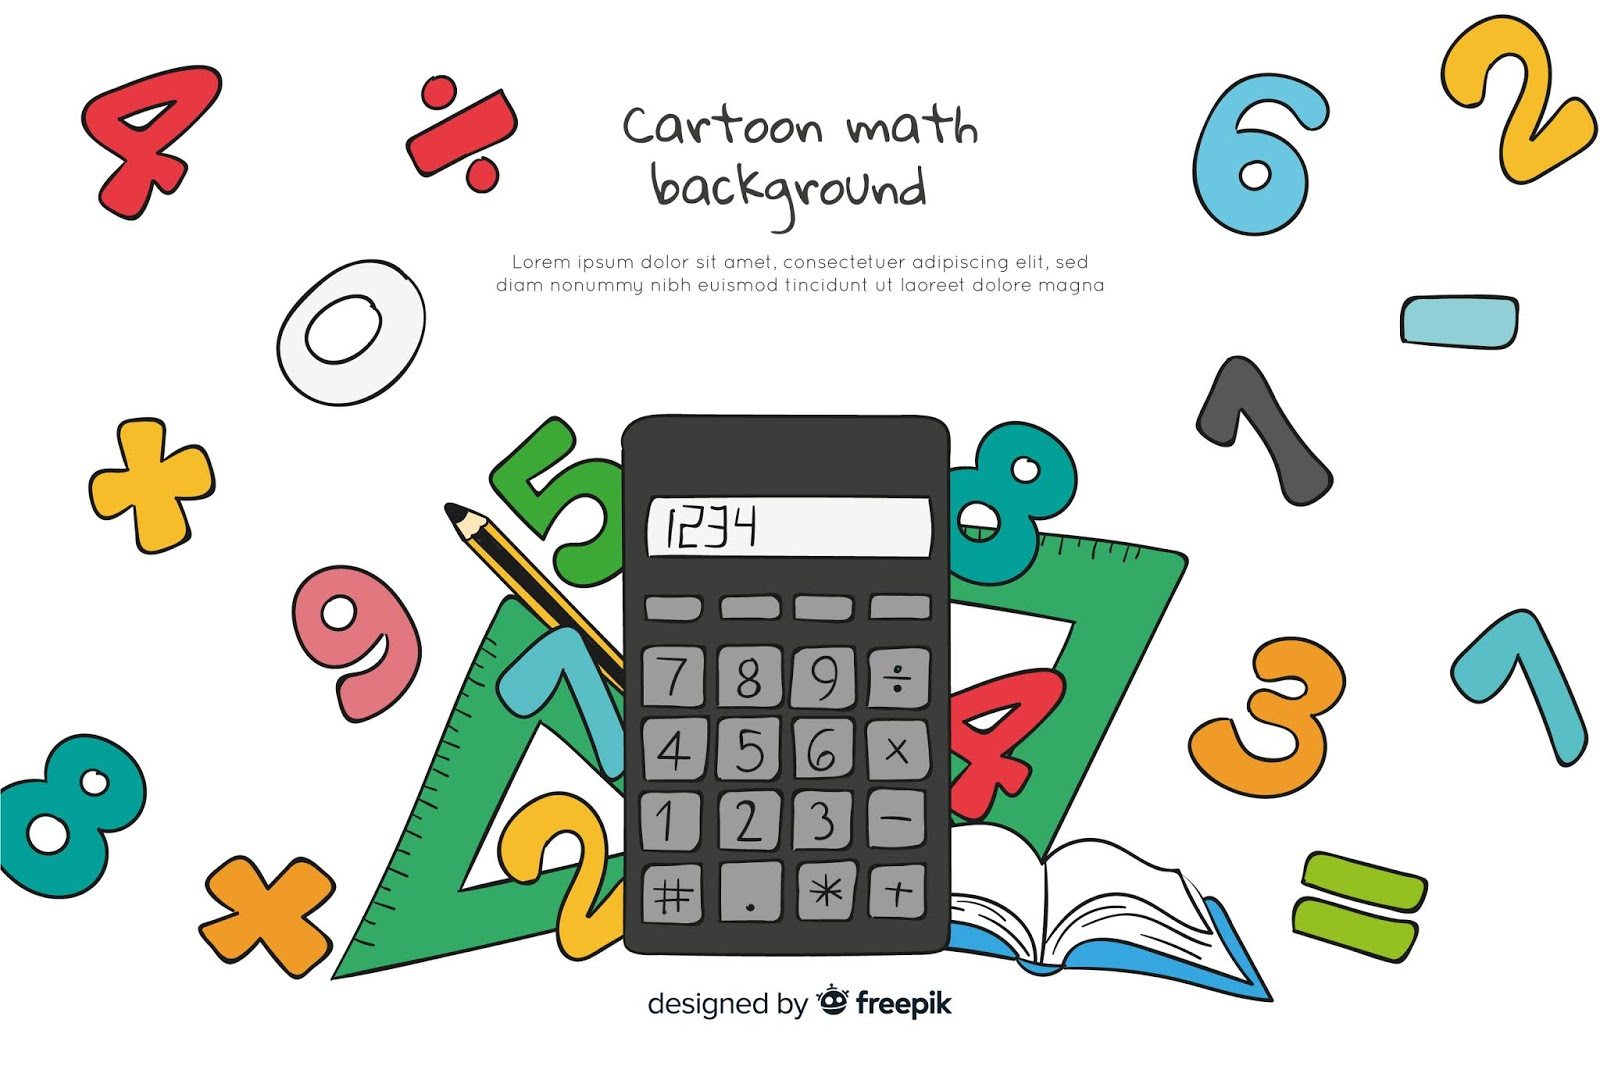 Cartoon Math Elements Background Free Download Vector CDR, AI, EPS and PNG Formats